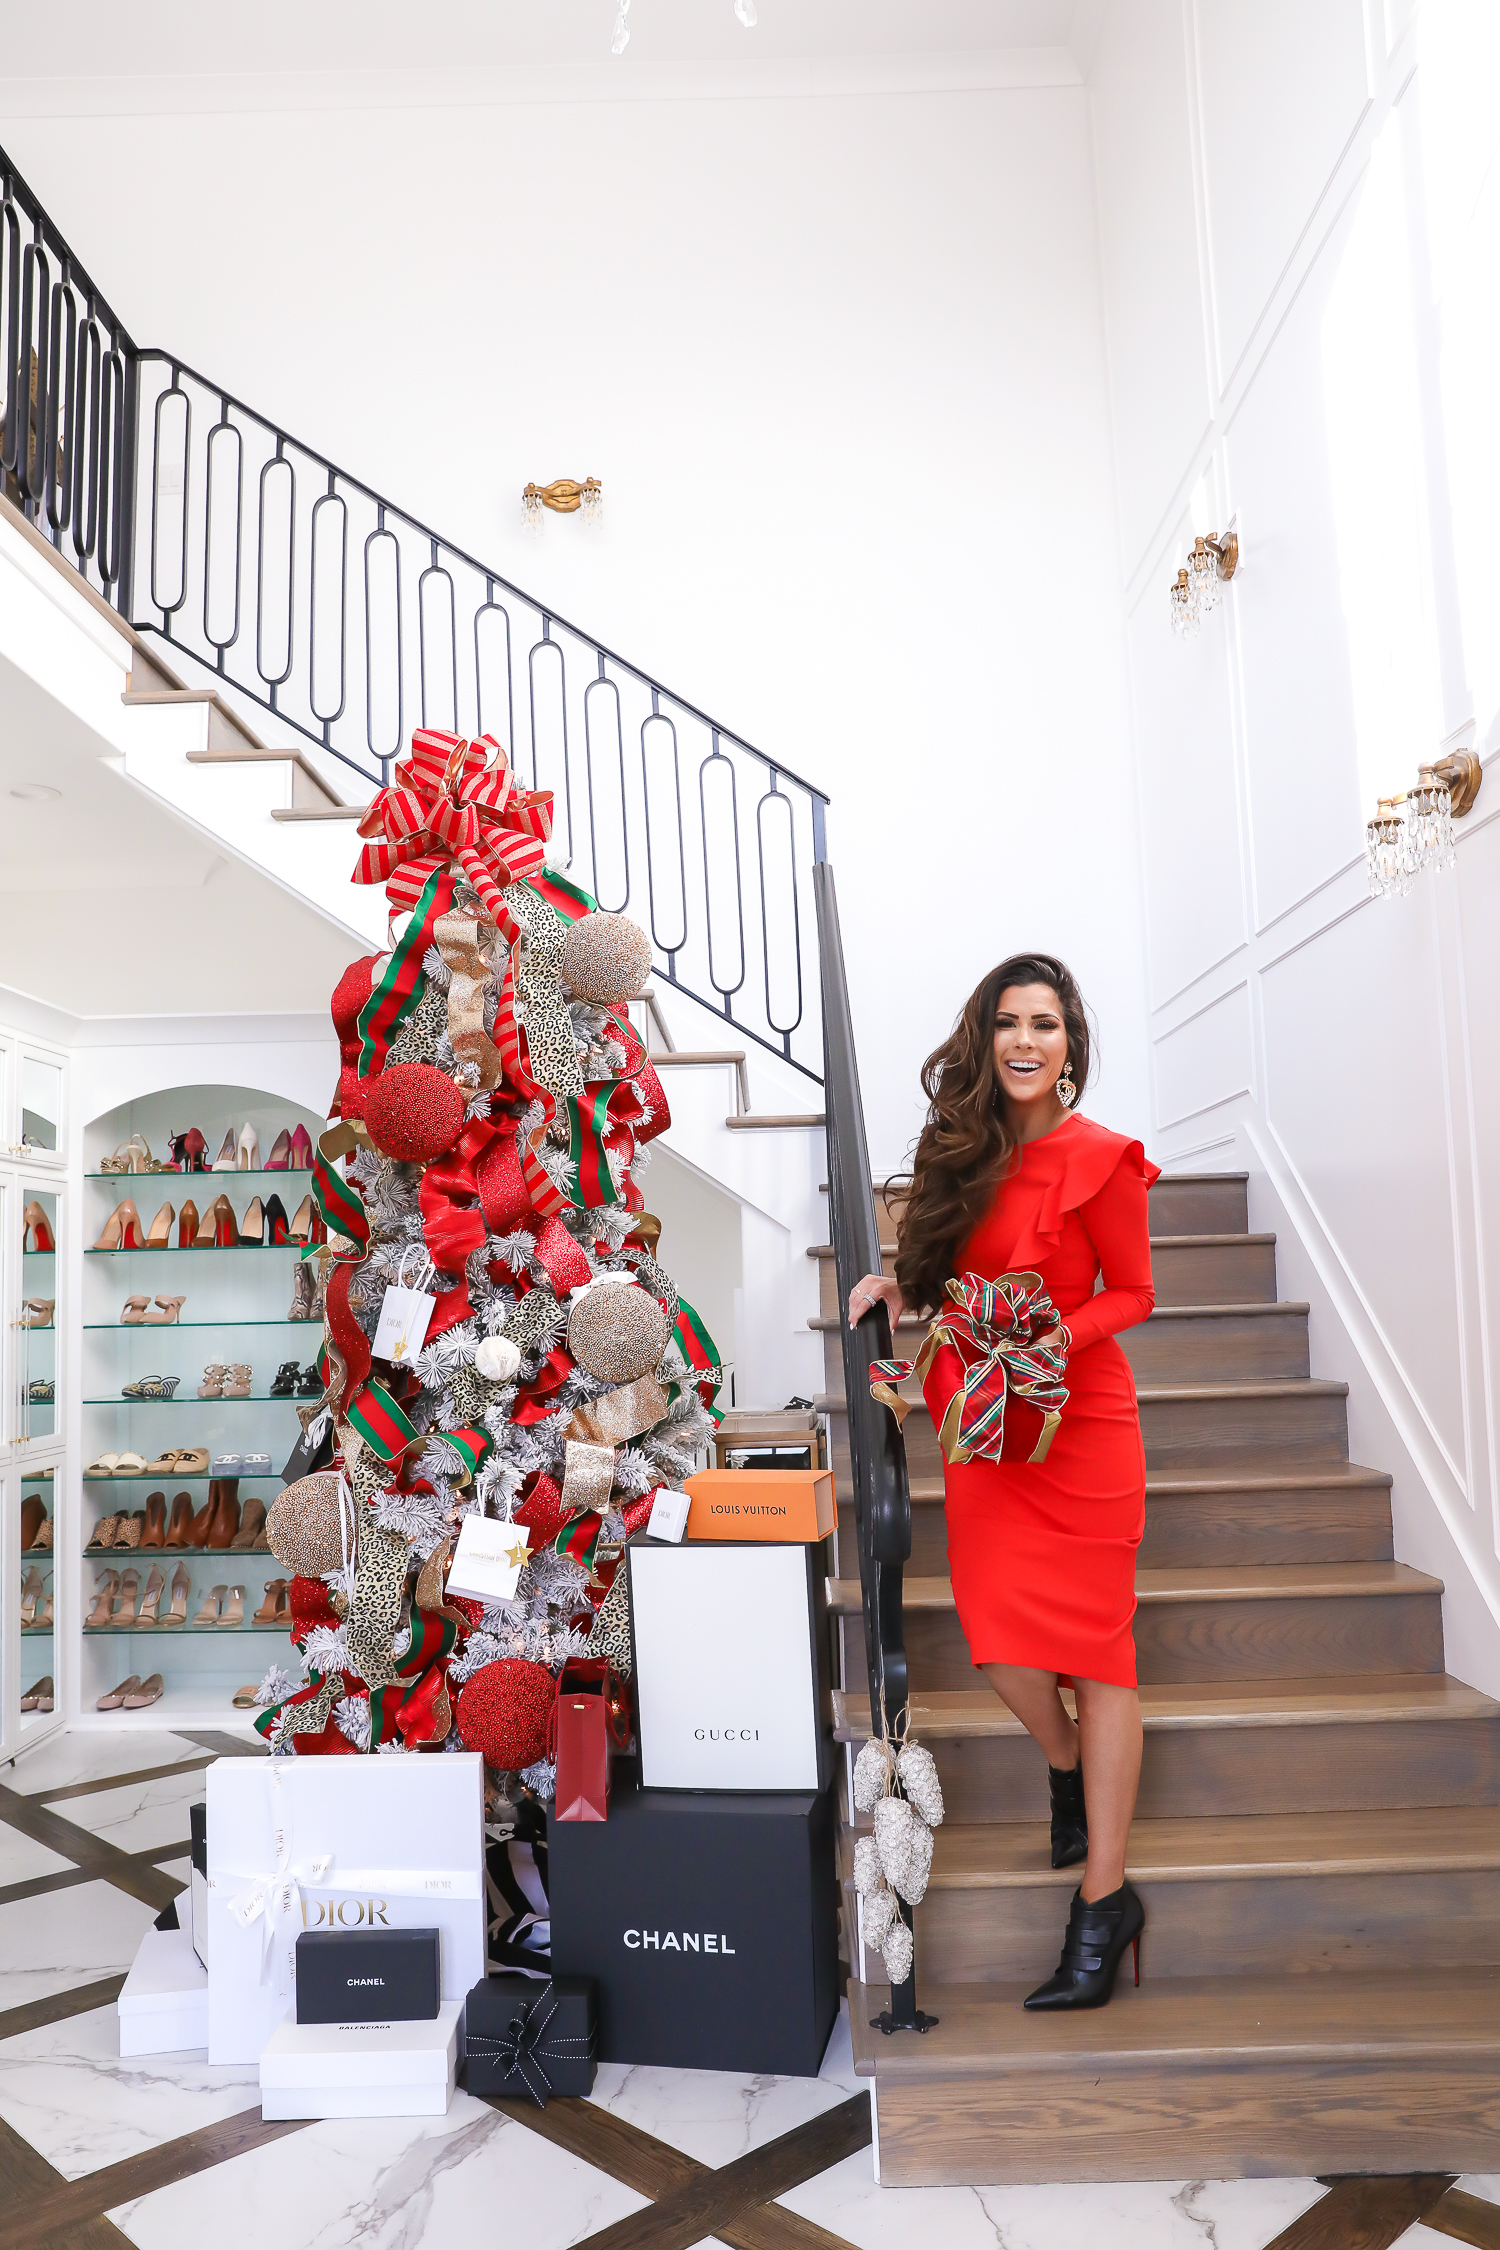 christmas tree inspiration, two story closet, designer christmas tree, giorgio armani review, emily gemma, pinterest christmas decor 2019-2 | The Perfect Rachel Parcell Dress & A New Makeup Review by popular Oklahoma fashion blog, The Sweetest Thing: image of a woman standing on a staircase next to a Christmas tree and wearing a Nordstrom Rachel Parcell Ruffle Long Sleeve Ponte Dress, Nordstrom Christian LouBoutin Triniboot Stiletto Bootie, Nordstrom Charlotte Tilbury Lip Cheat Lip Liner, Nordstrom Charlotte Tilbury Hot Lips Lipstick, and Nordstrom Tom Ford Gloss Luxe Moisturizing Lipgloss.